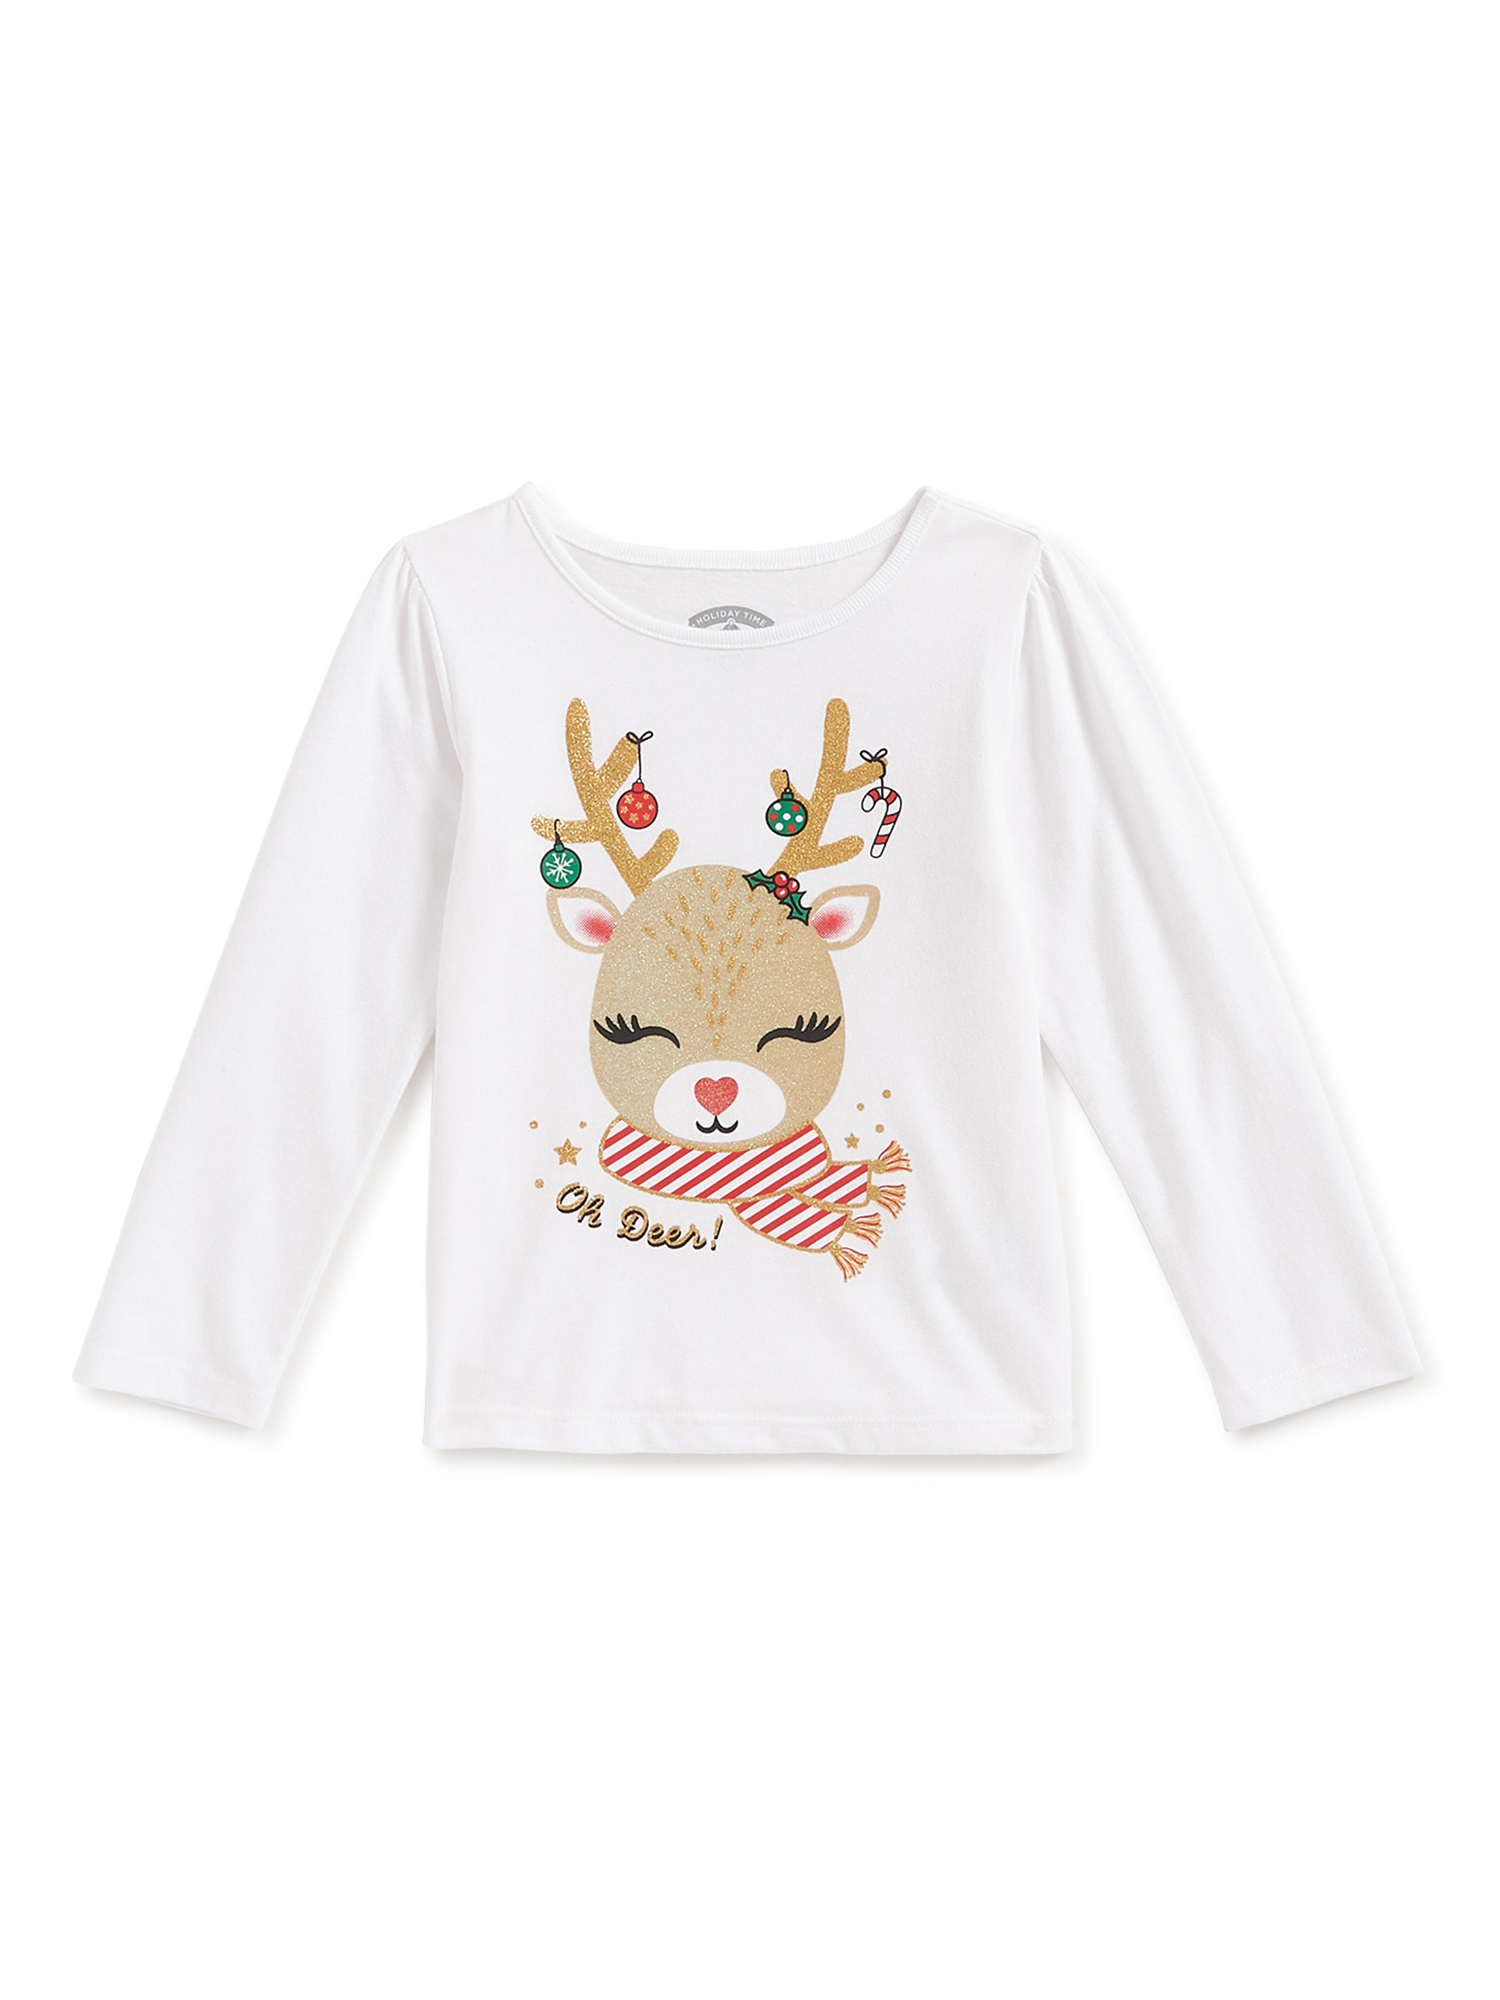 Bagilaanoe Toddler Baby Girl Thanksgiving//Christmas Clothes Trees Deer Letter Print Ruffle Long Sleeve Tops T-Shirts 6M-5T